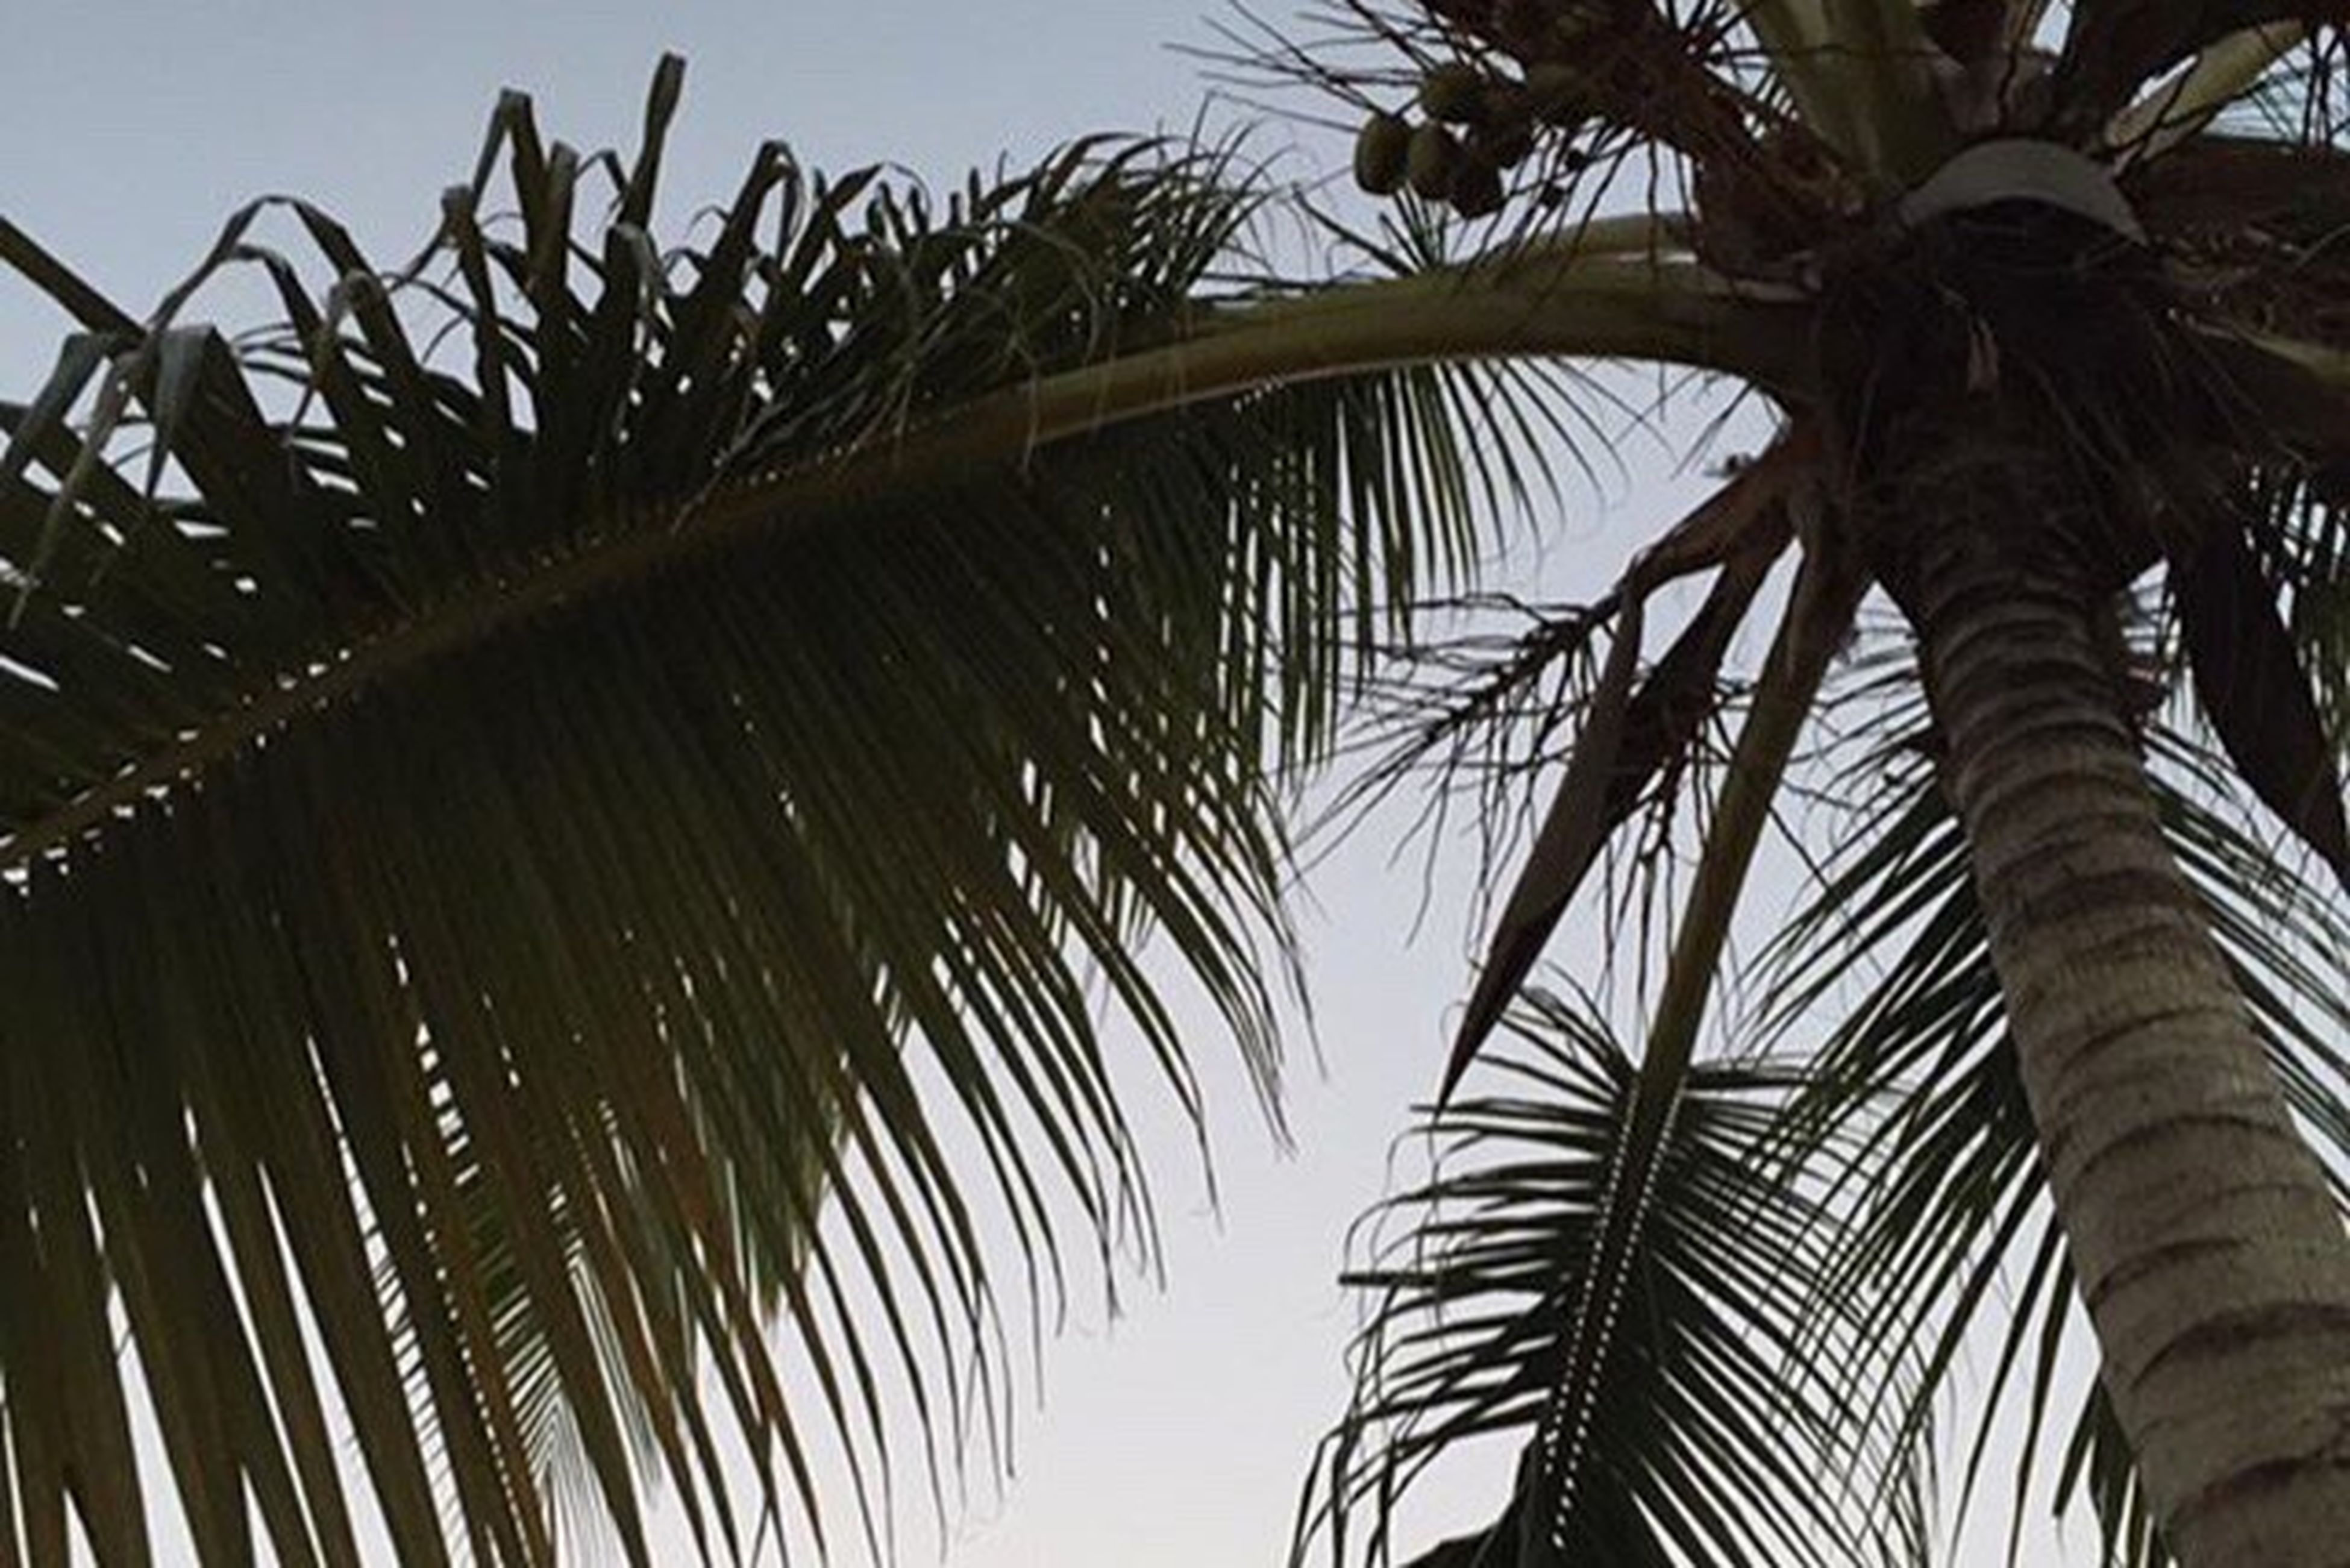 palm tree, palm leaf, low angle view, tree, growth, tropical tree, nature, coconut palm tree, tranquility, leaf, sky, tree trunk, branch, beauty in nature, palm frond, tropical climate, clear sky, no people, outdoors, day